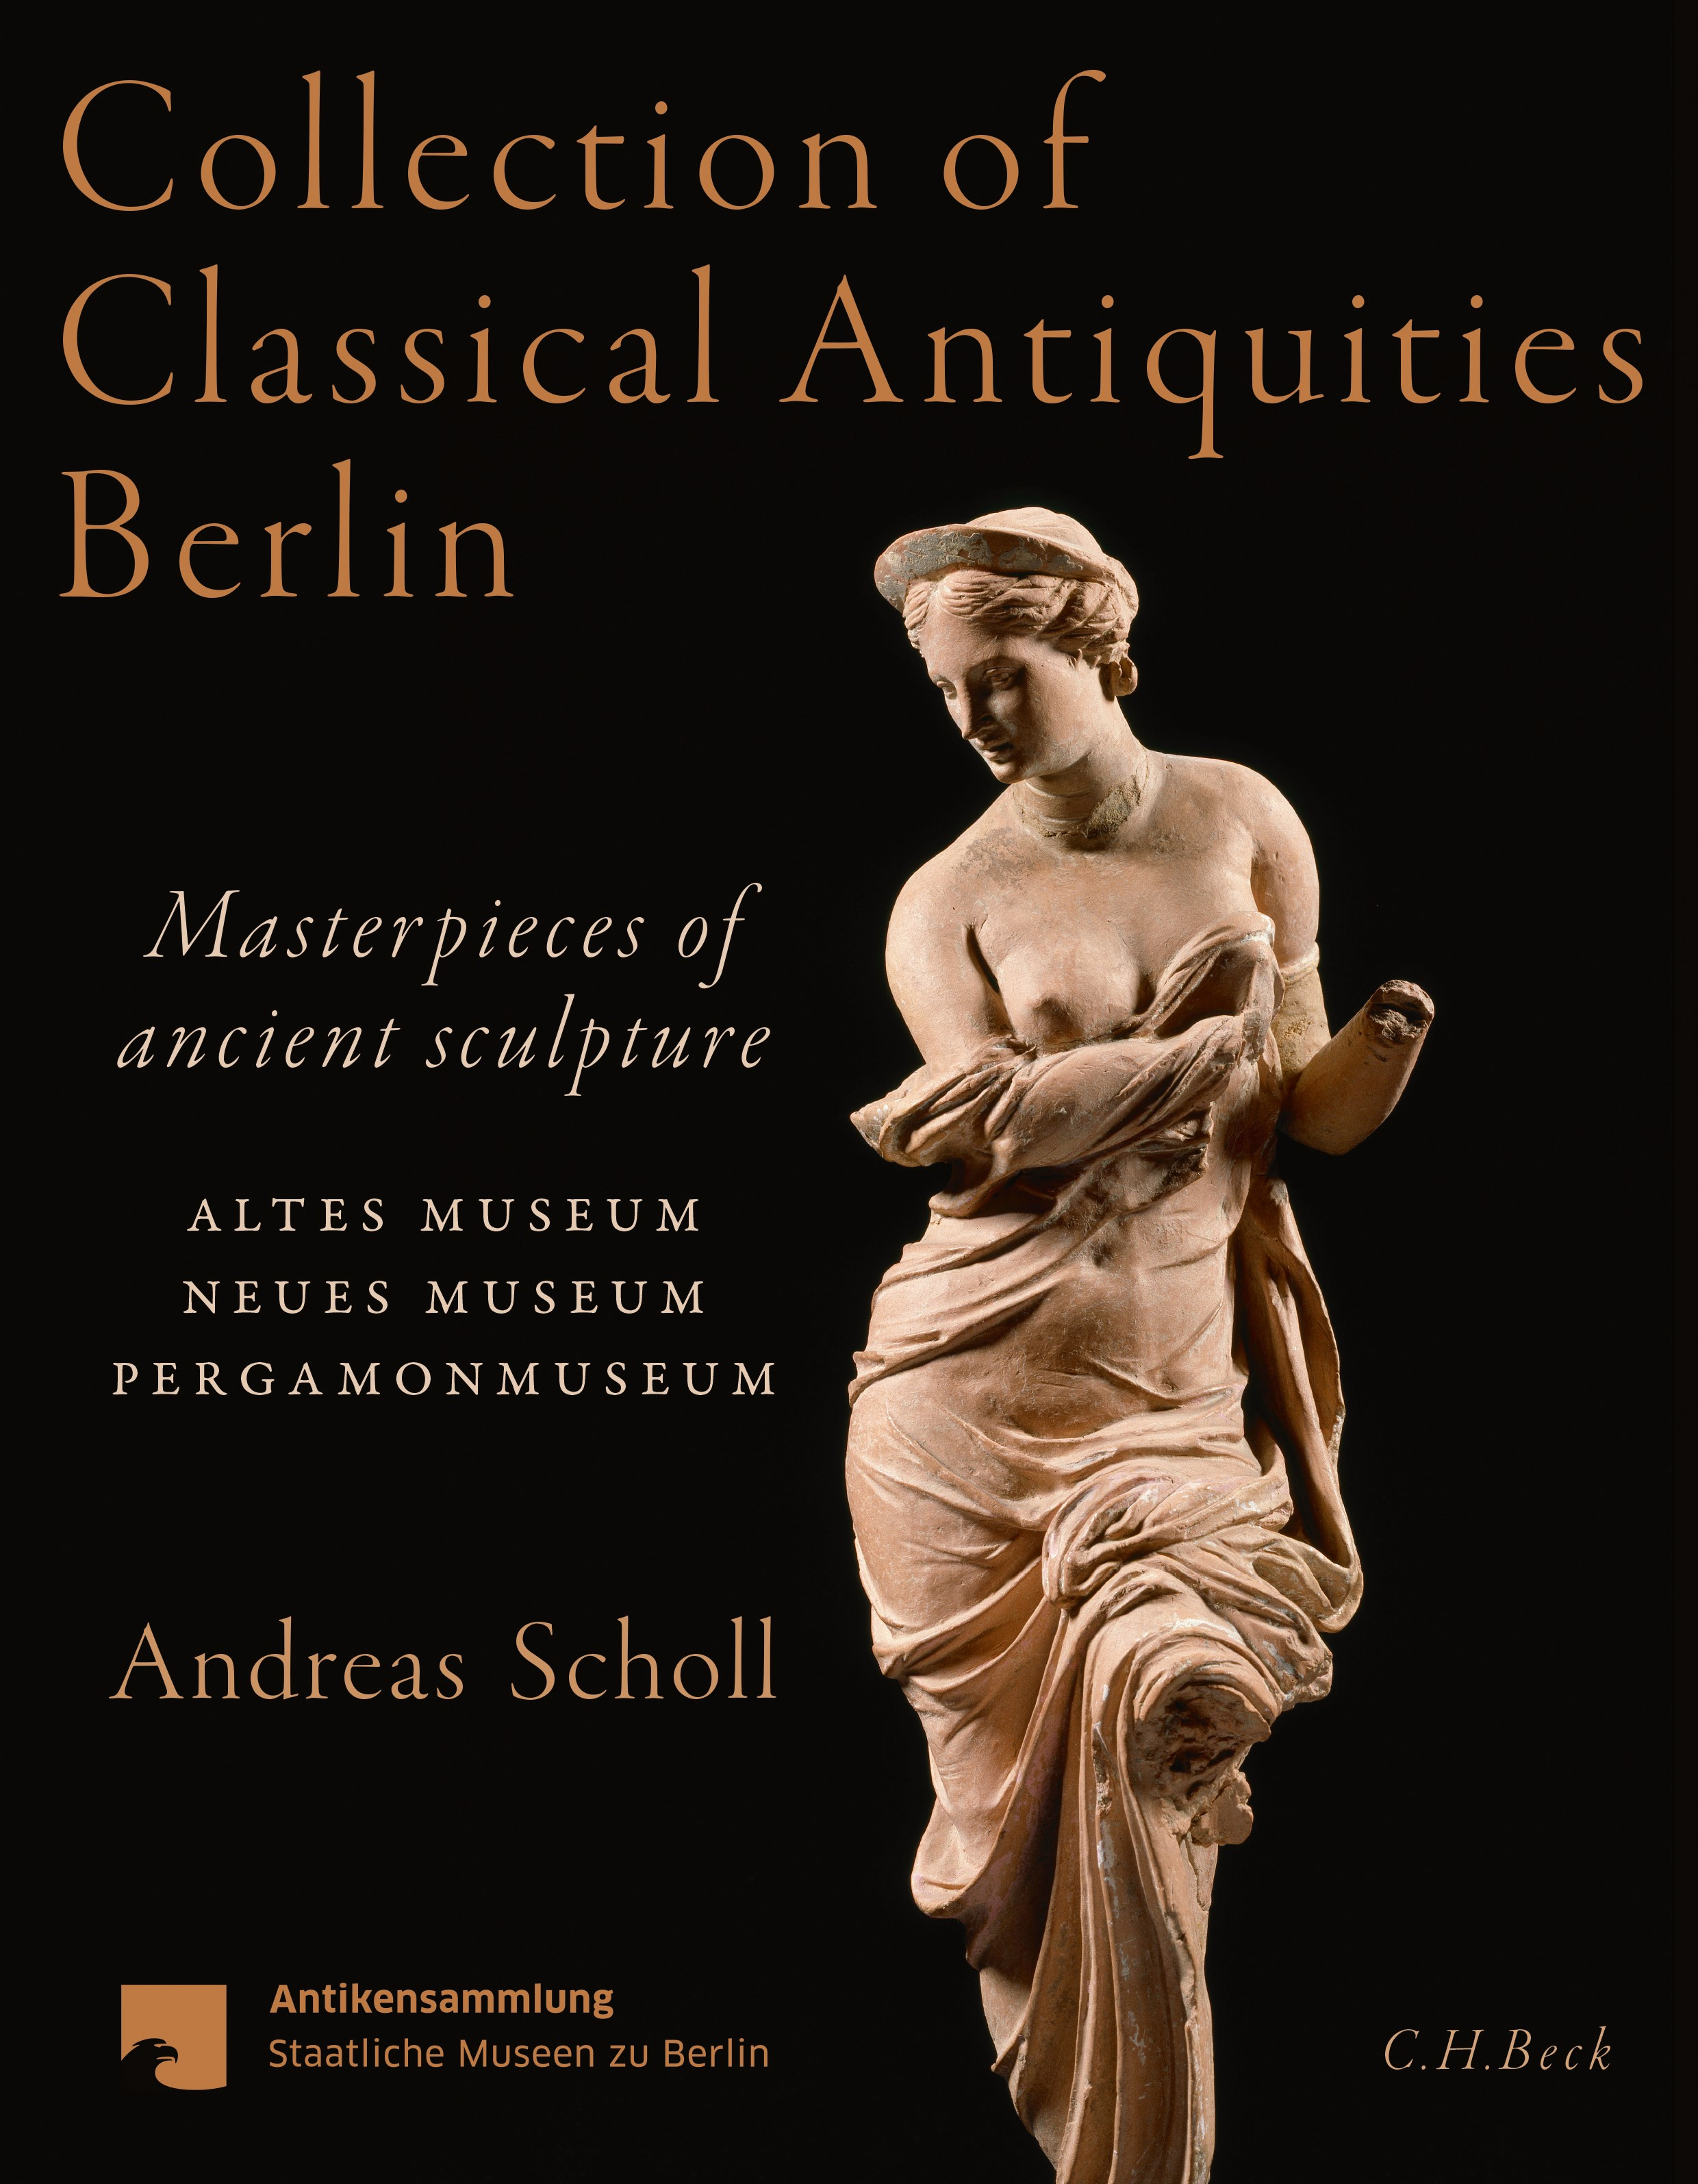 Collection of Classical Antiquities Berlin | Scholl, Andreas, 2019 | Buch (Cover)